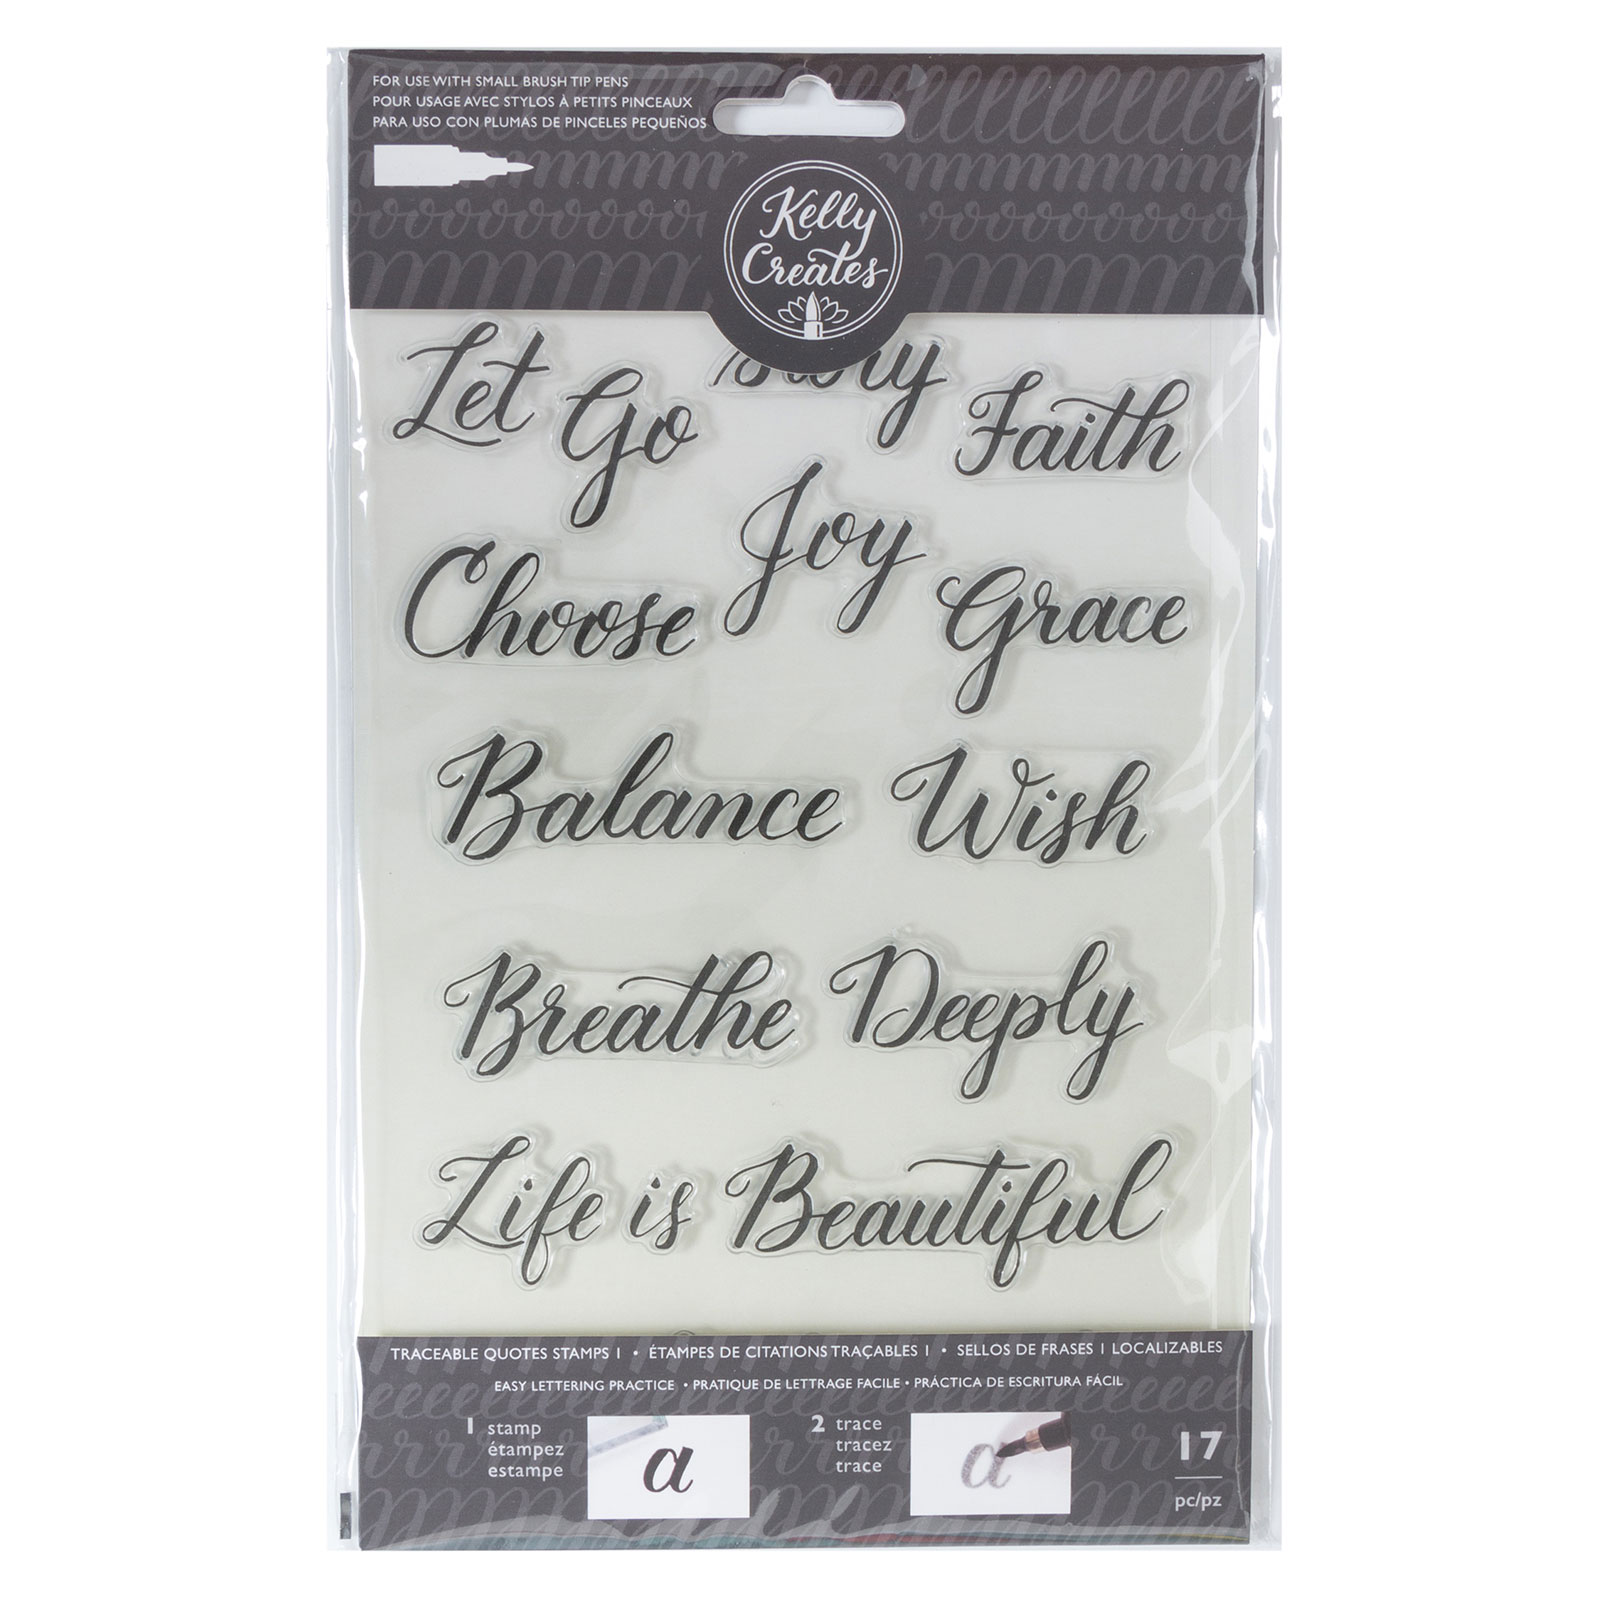 W346400 Traceable Acrylic Stamps Quotes1 Back 343553 Kelly Creates Black Brush Pen Set